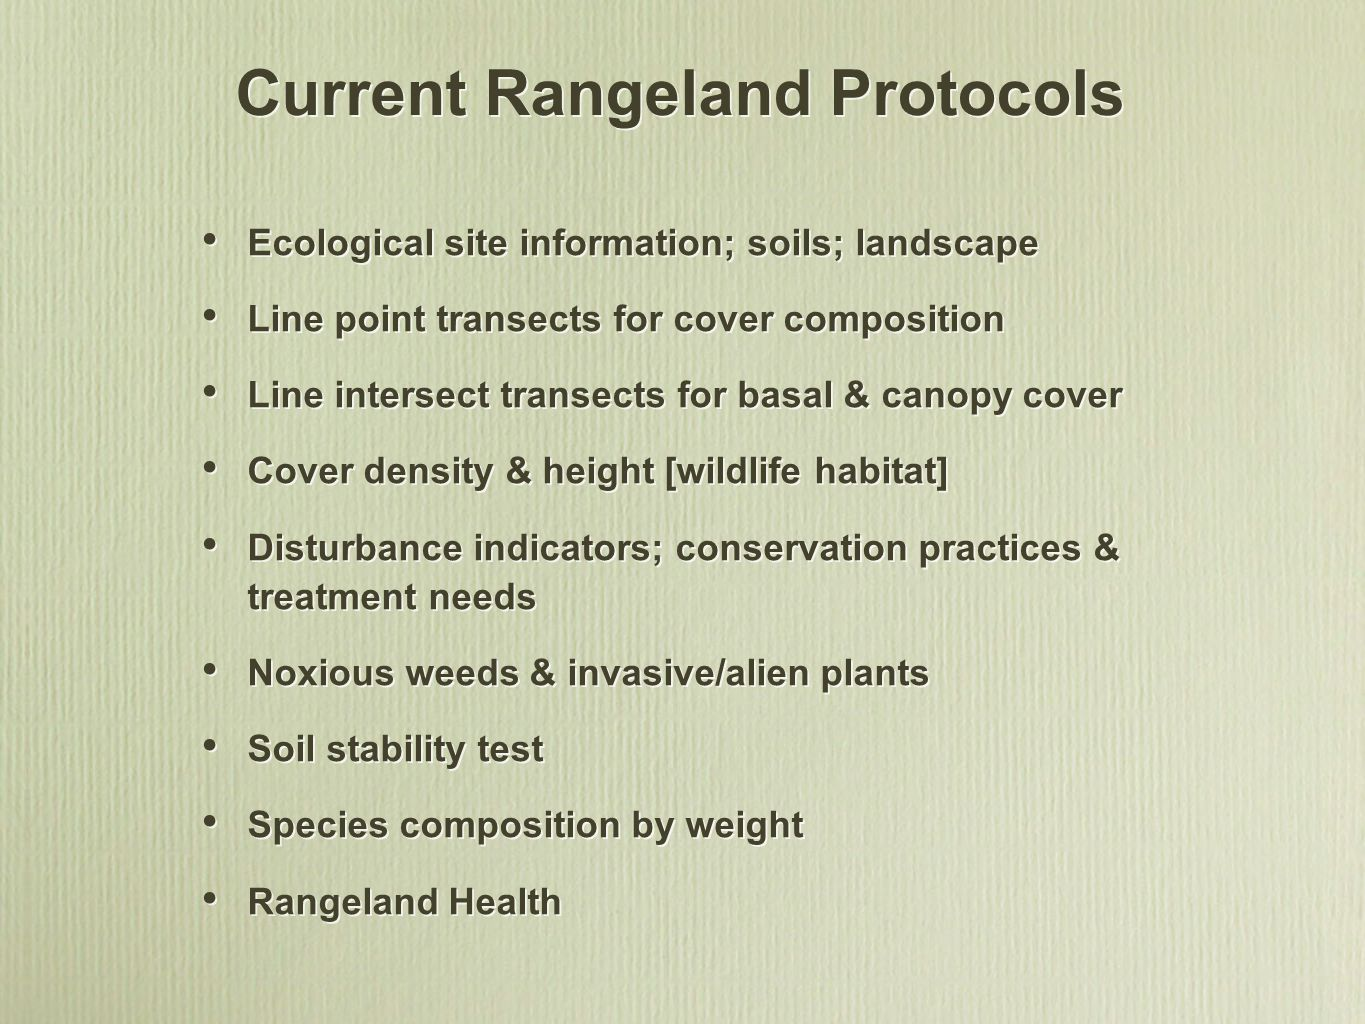 Current Rangeland Protocols